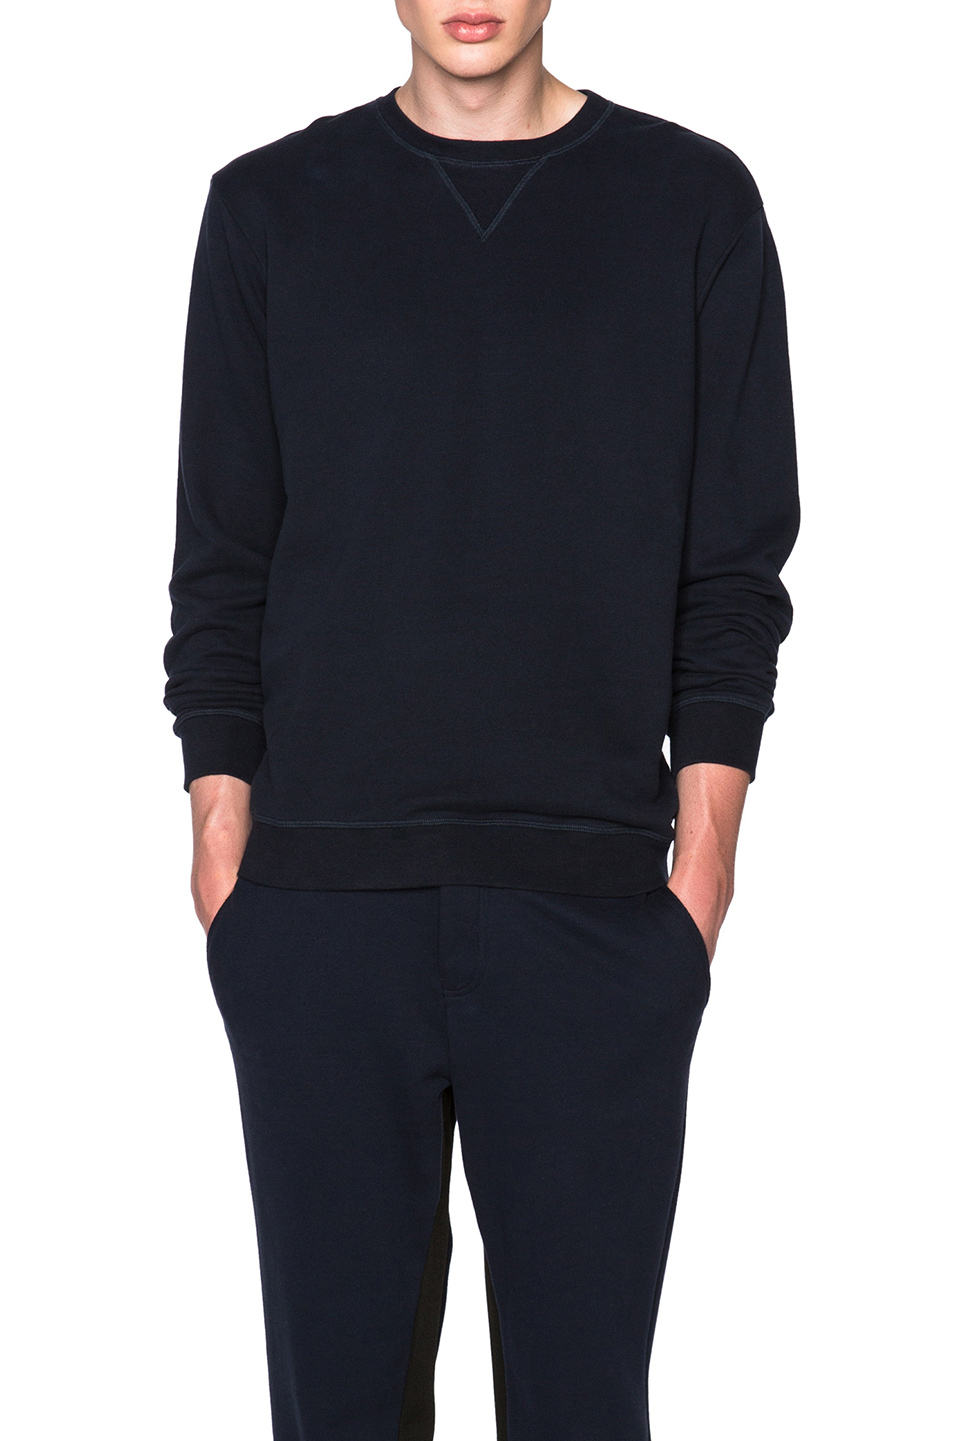 Maison Margiela Sweatshirt in Blue